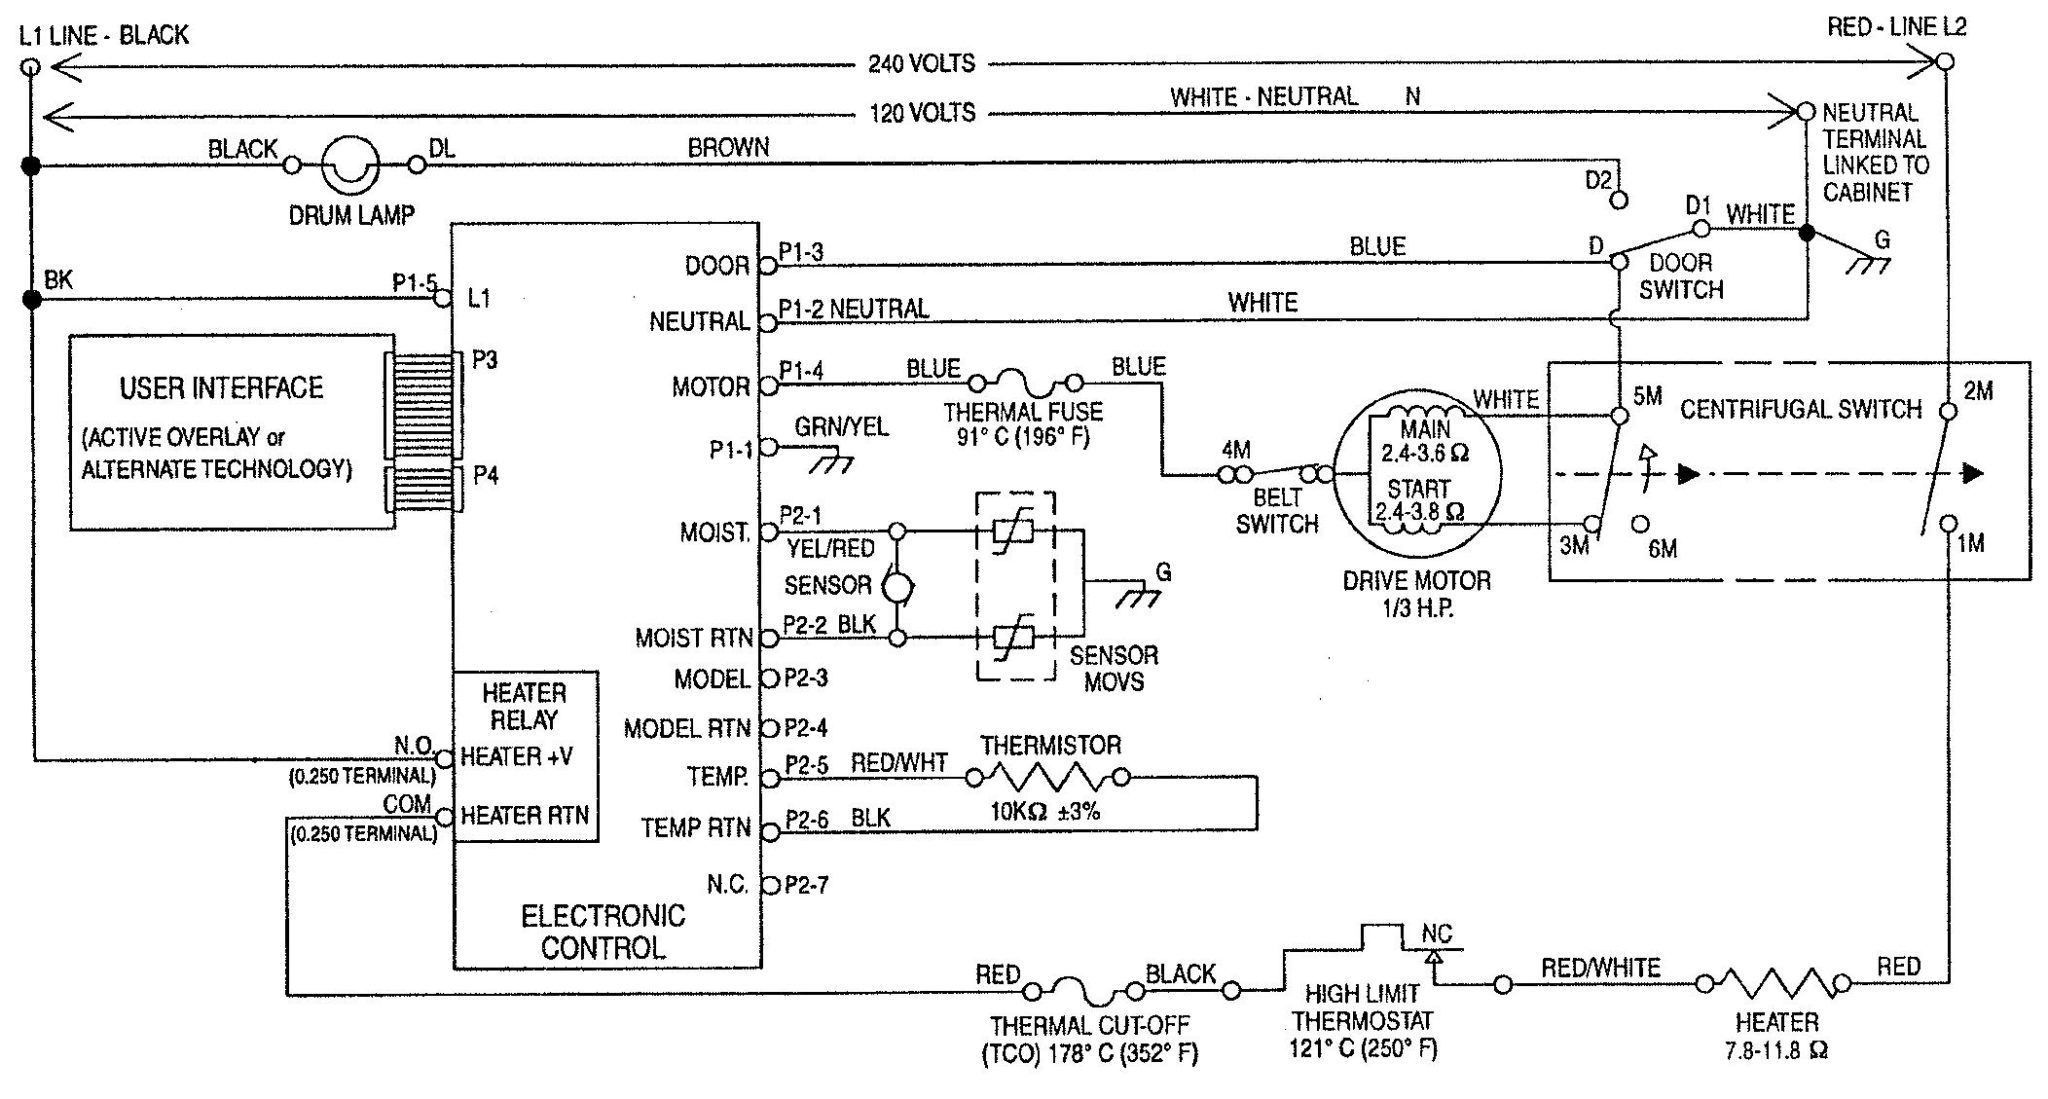 Appliance Course Module Five Figure 5 80?resize=665%2C357&ssl=1 ge dryer motor wiring diagram the best wiring diagram 2017 ge dryer start switch wiring diagram at panicattacktreatment.co